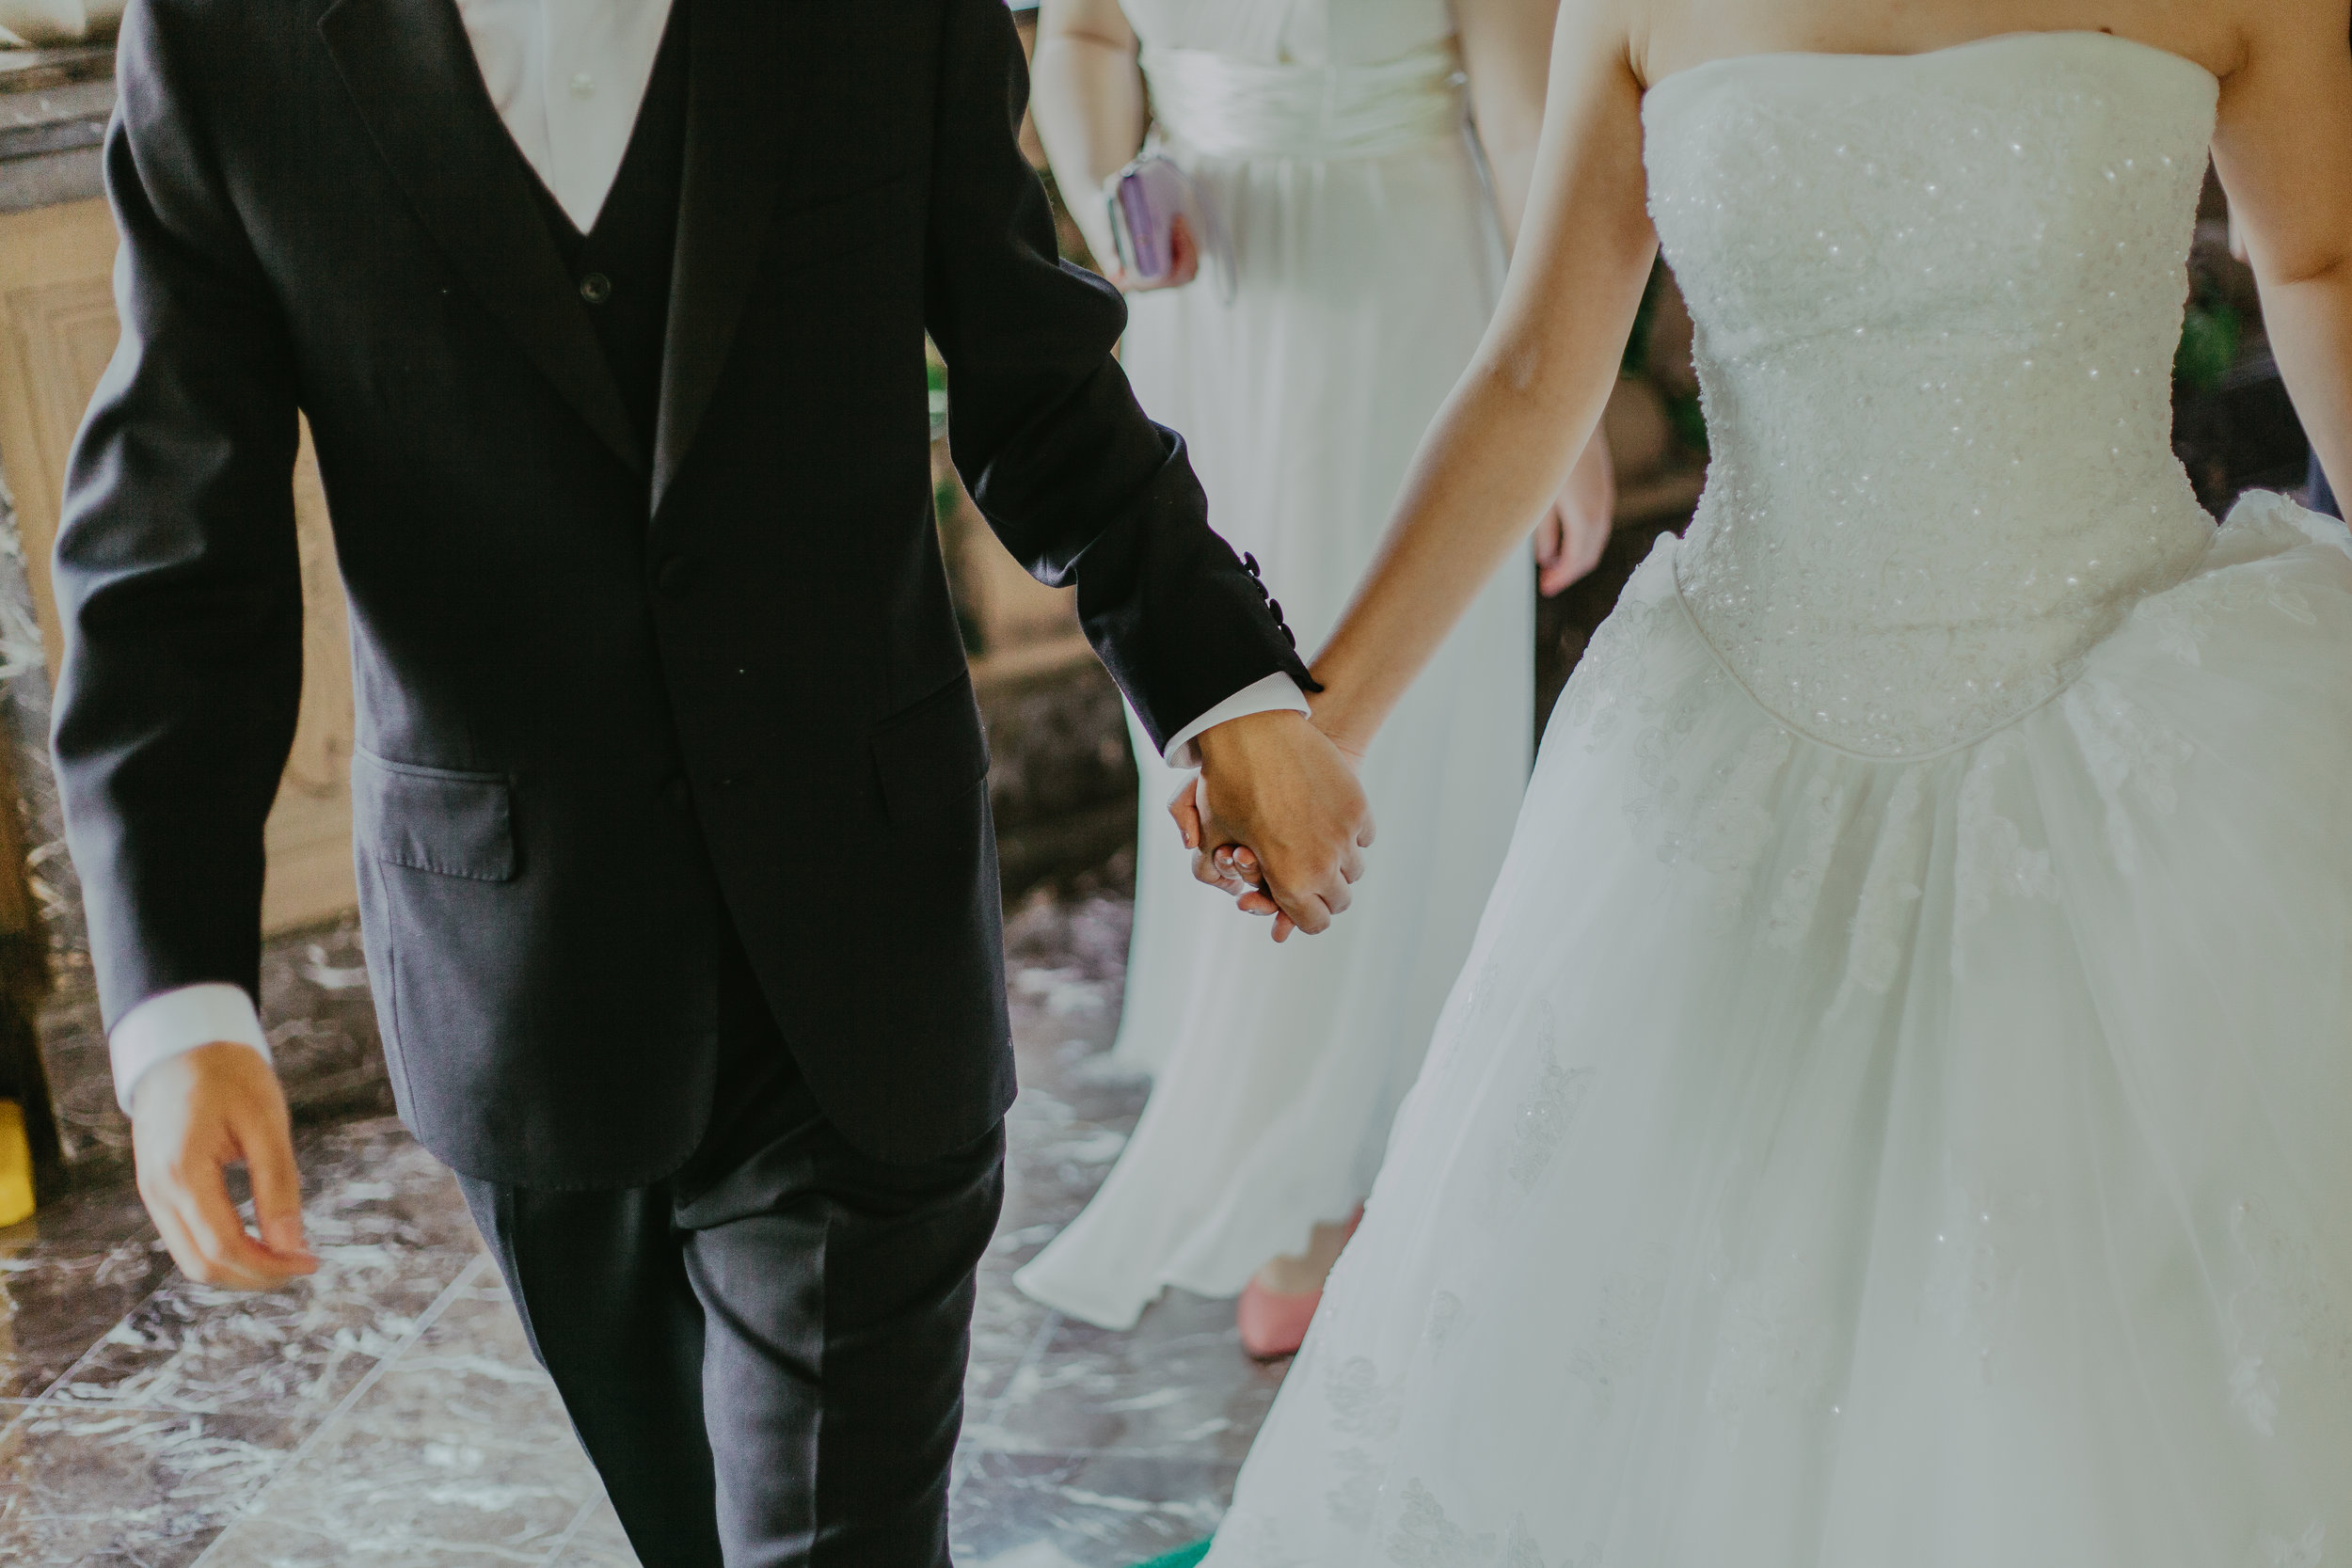 """""""Tie a square knot around your marriage now so it doesn't unravel."""" - By Philip K. Hardin, M.A., M. Div., LMFT, LPC"""